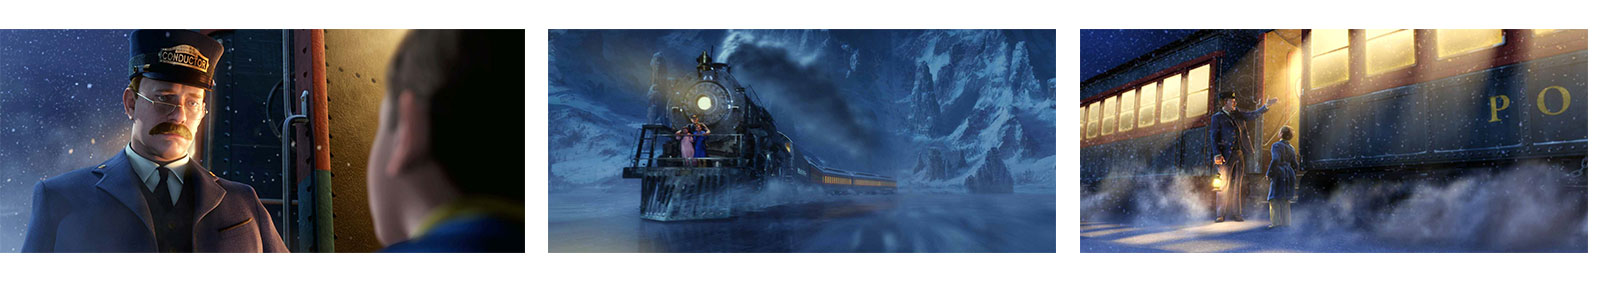 still_polarexpress_ride